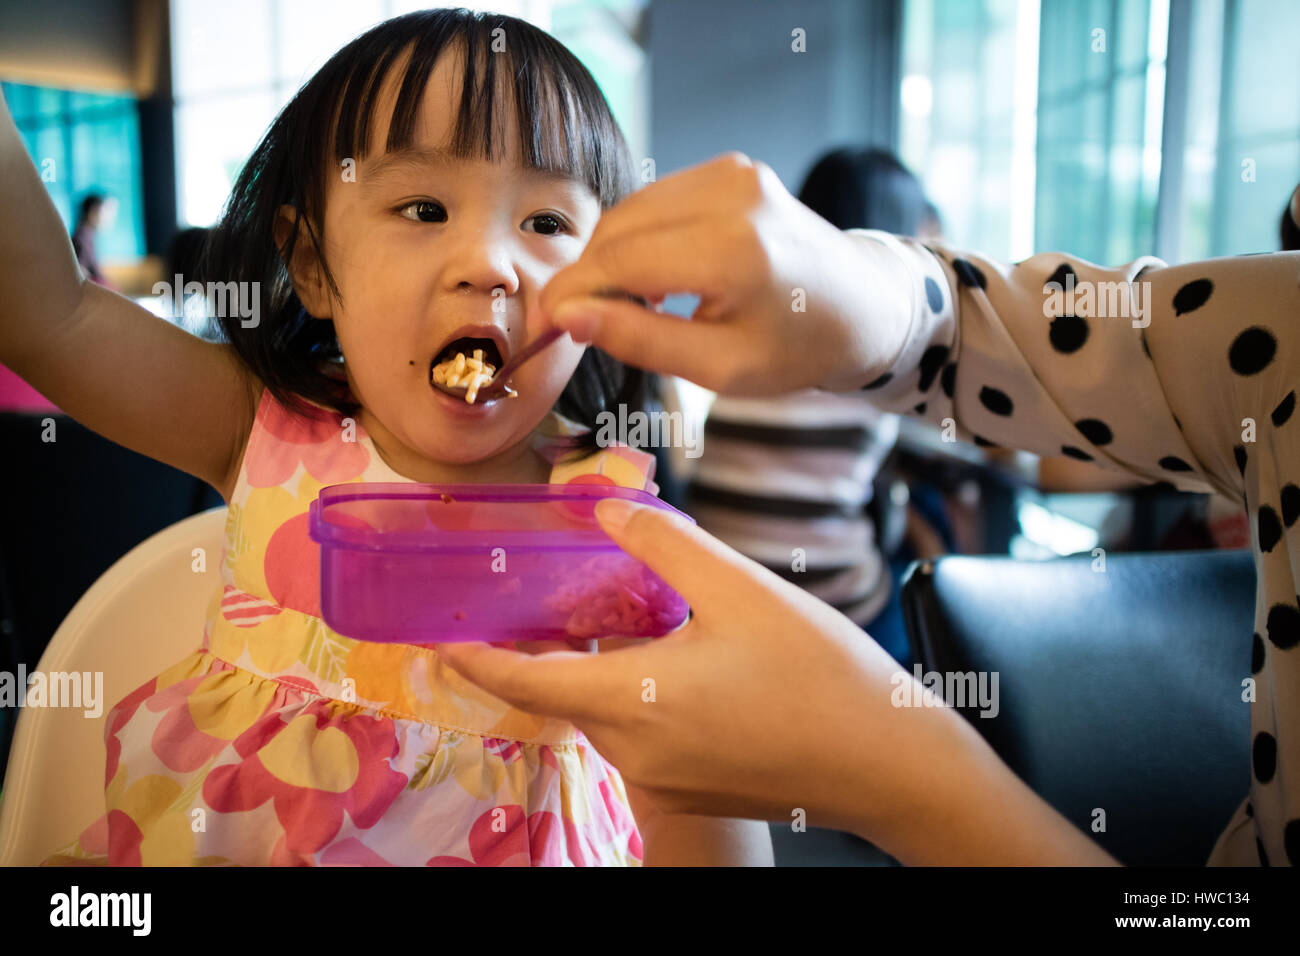 Asian Mother Feeding Kid Daughter Food in a Restaurant - Stock Image